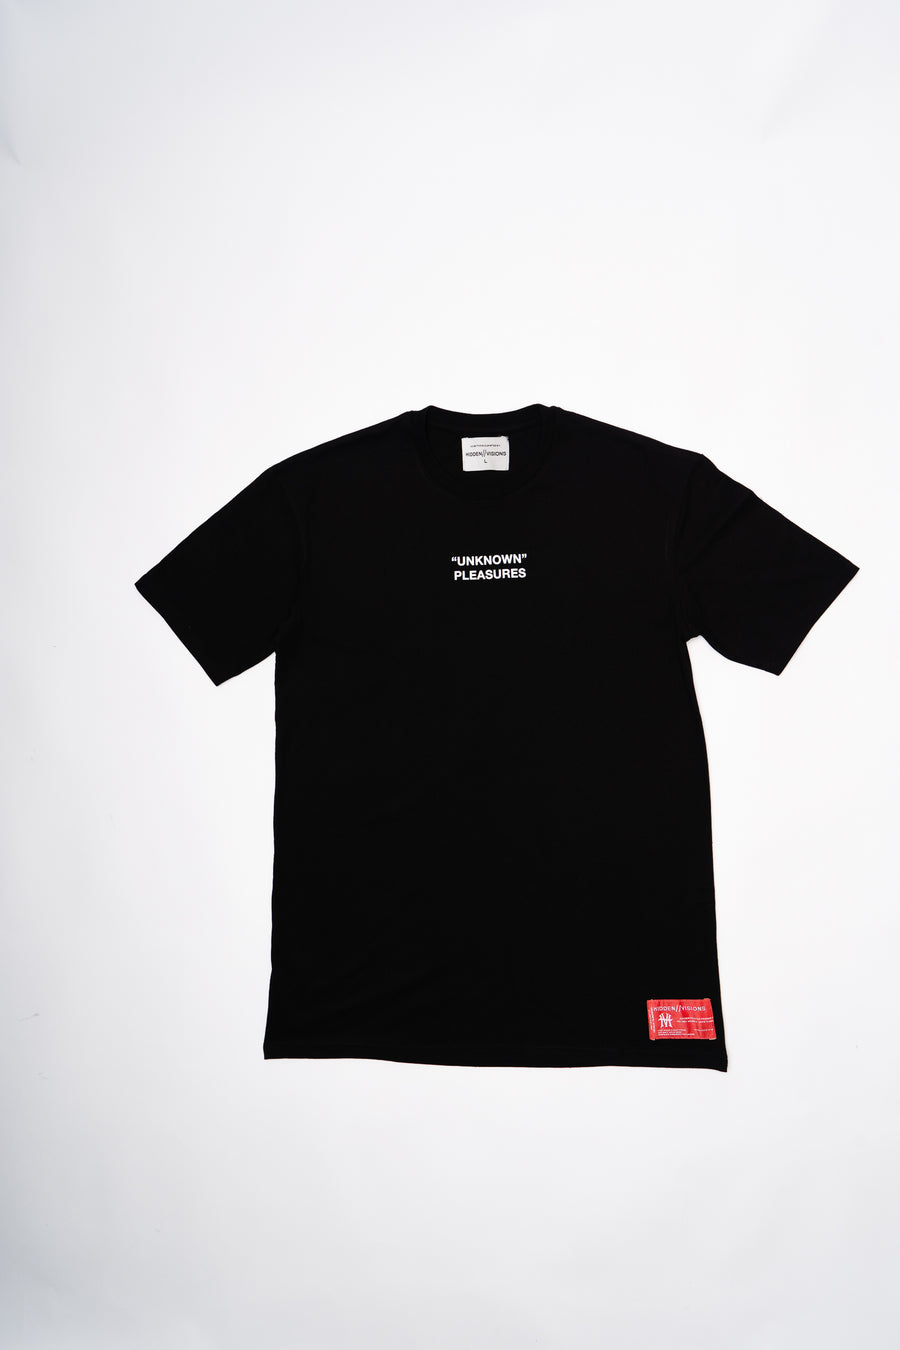 UNKNOWN PLEASURES T-SHIRT BLACK